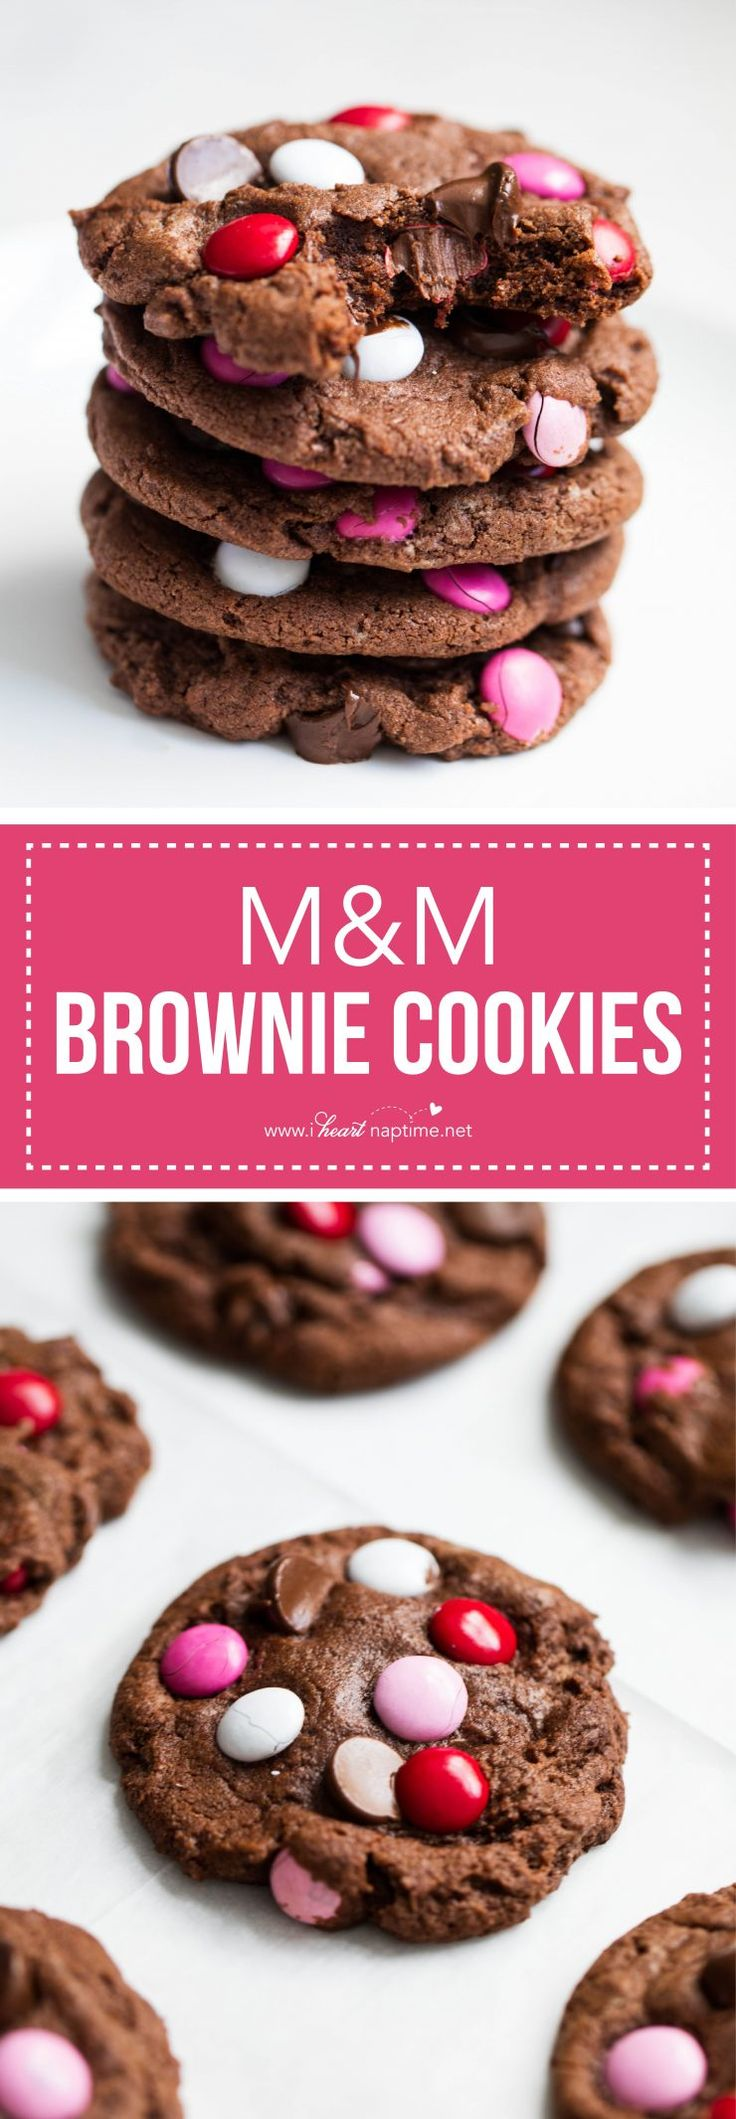 Fudgy M&M chocolate brownie cookies with extra chocolate chips and M&M's in the batter- the perfect cookie for Valentine's Day!